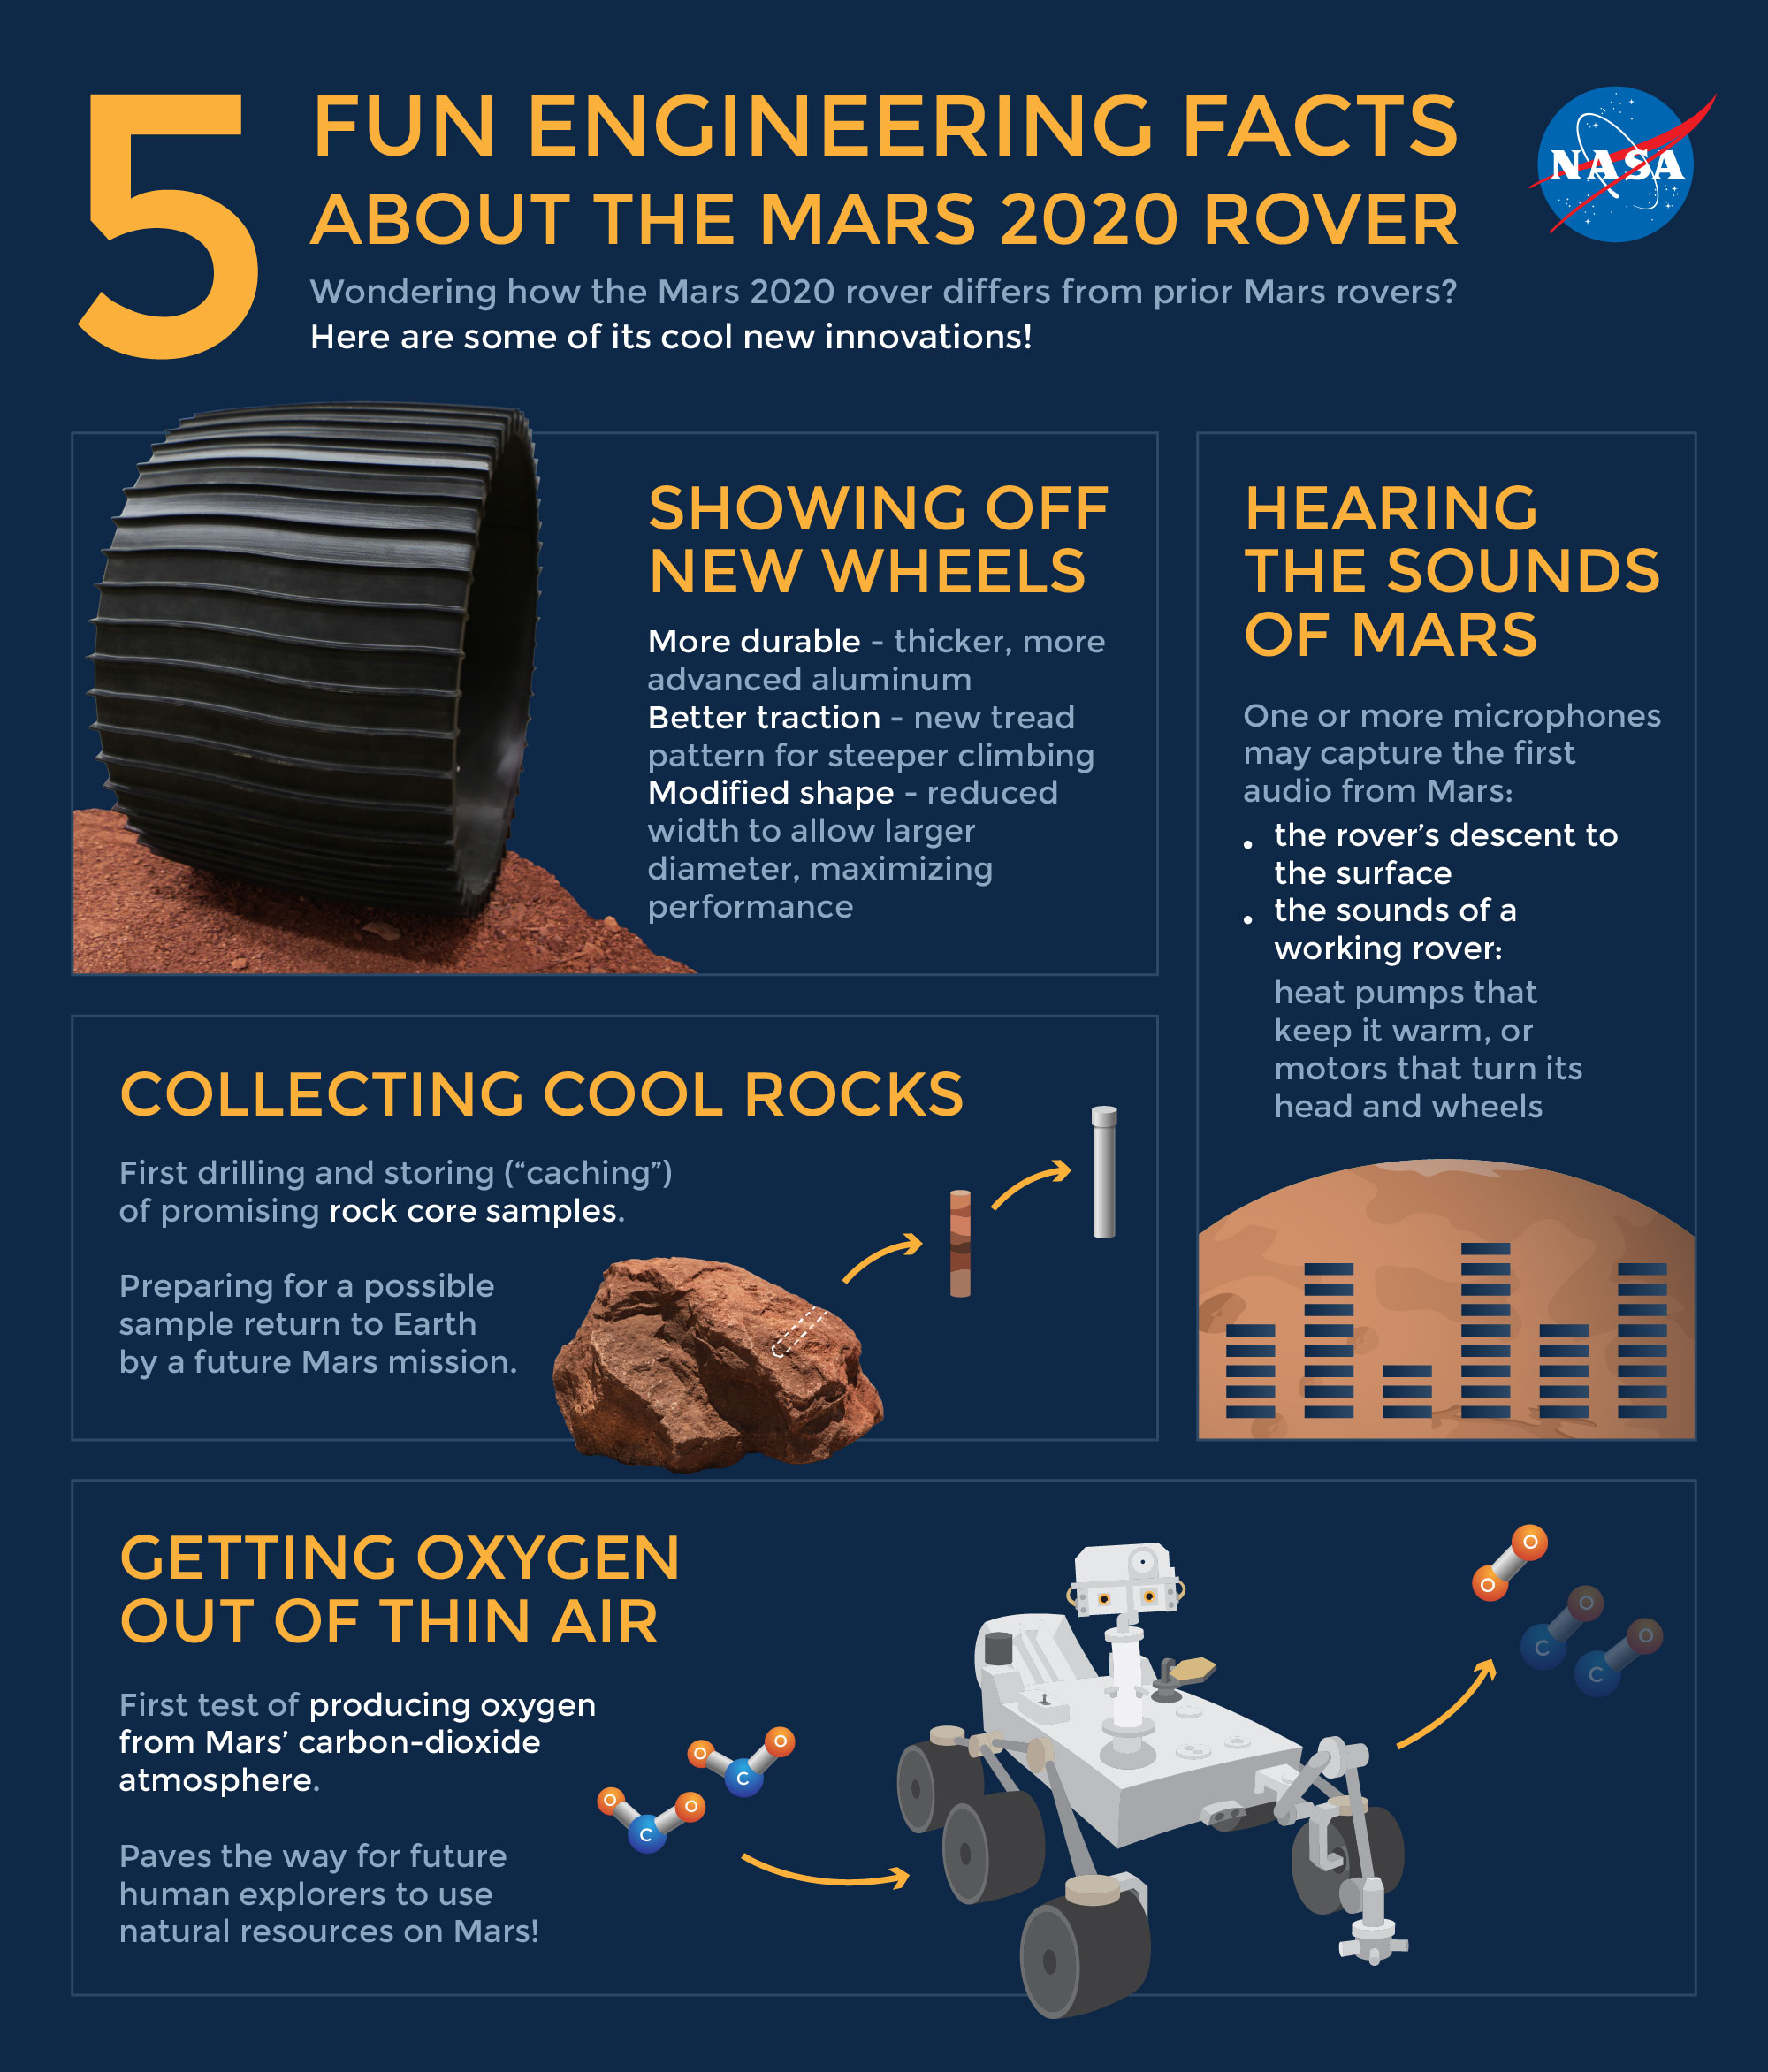 Infographic showing 5 engineering facts about the Mars 2020 rover